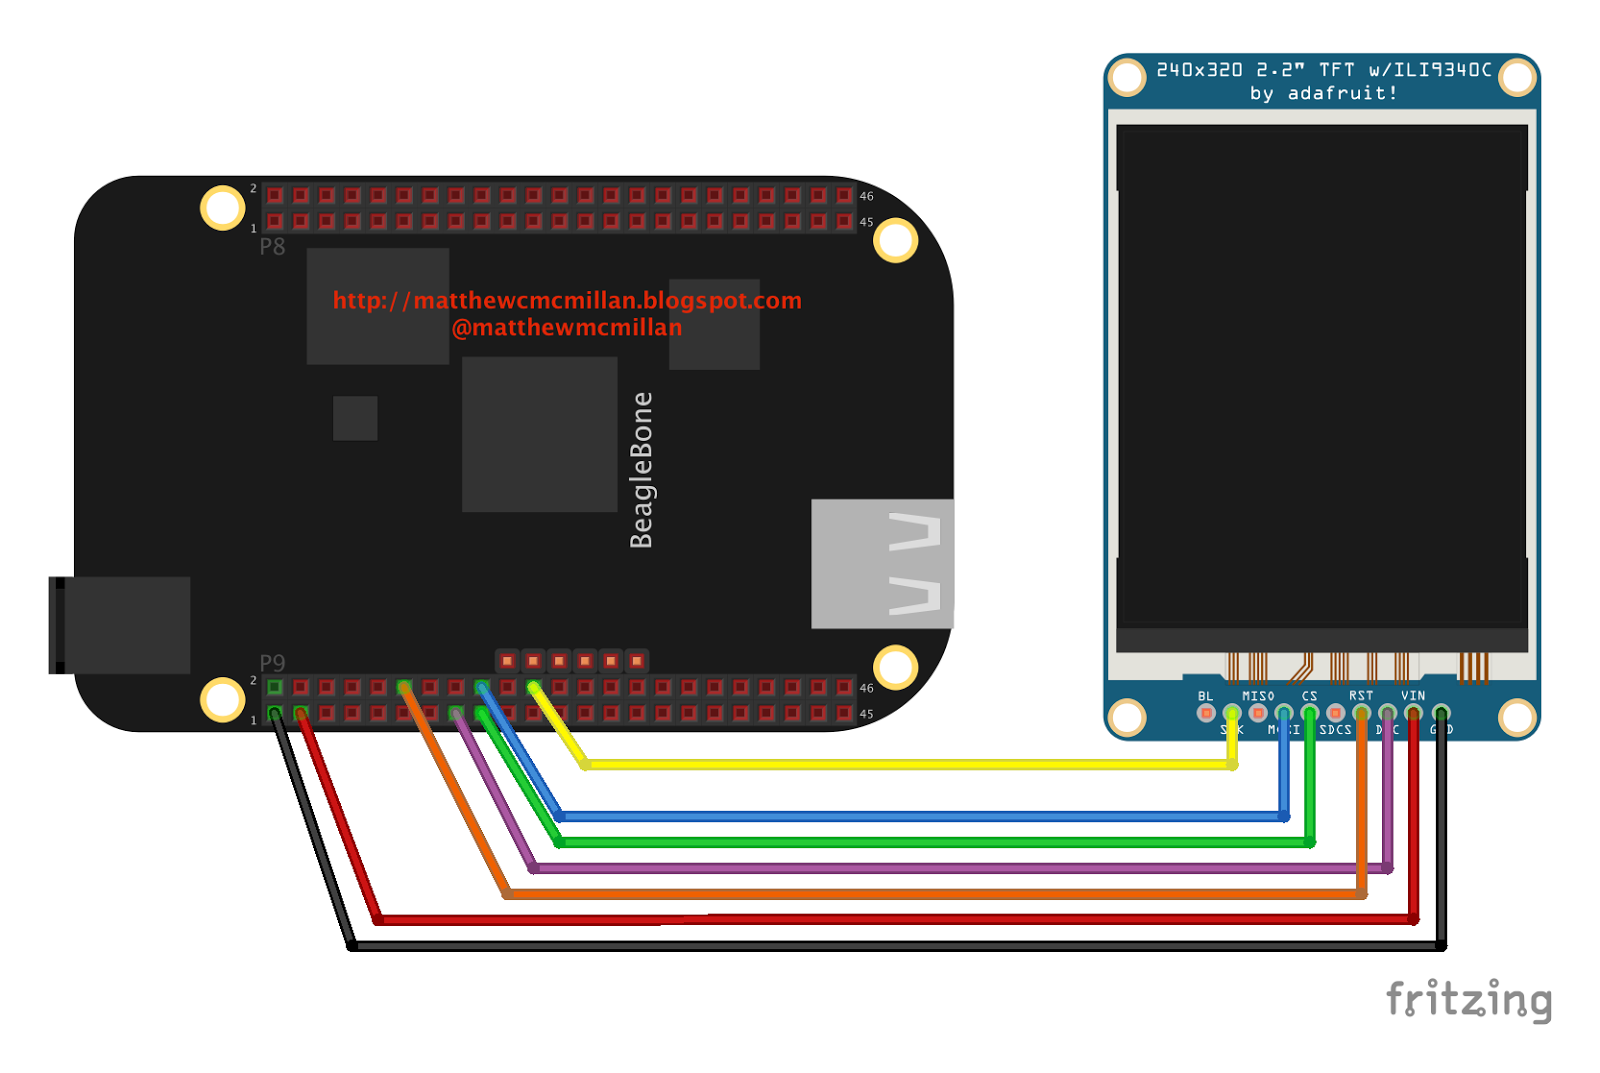 Matthew McMillan: Experimenting with BeagleBone Black and a